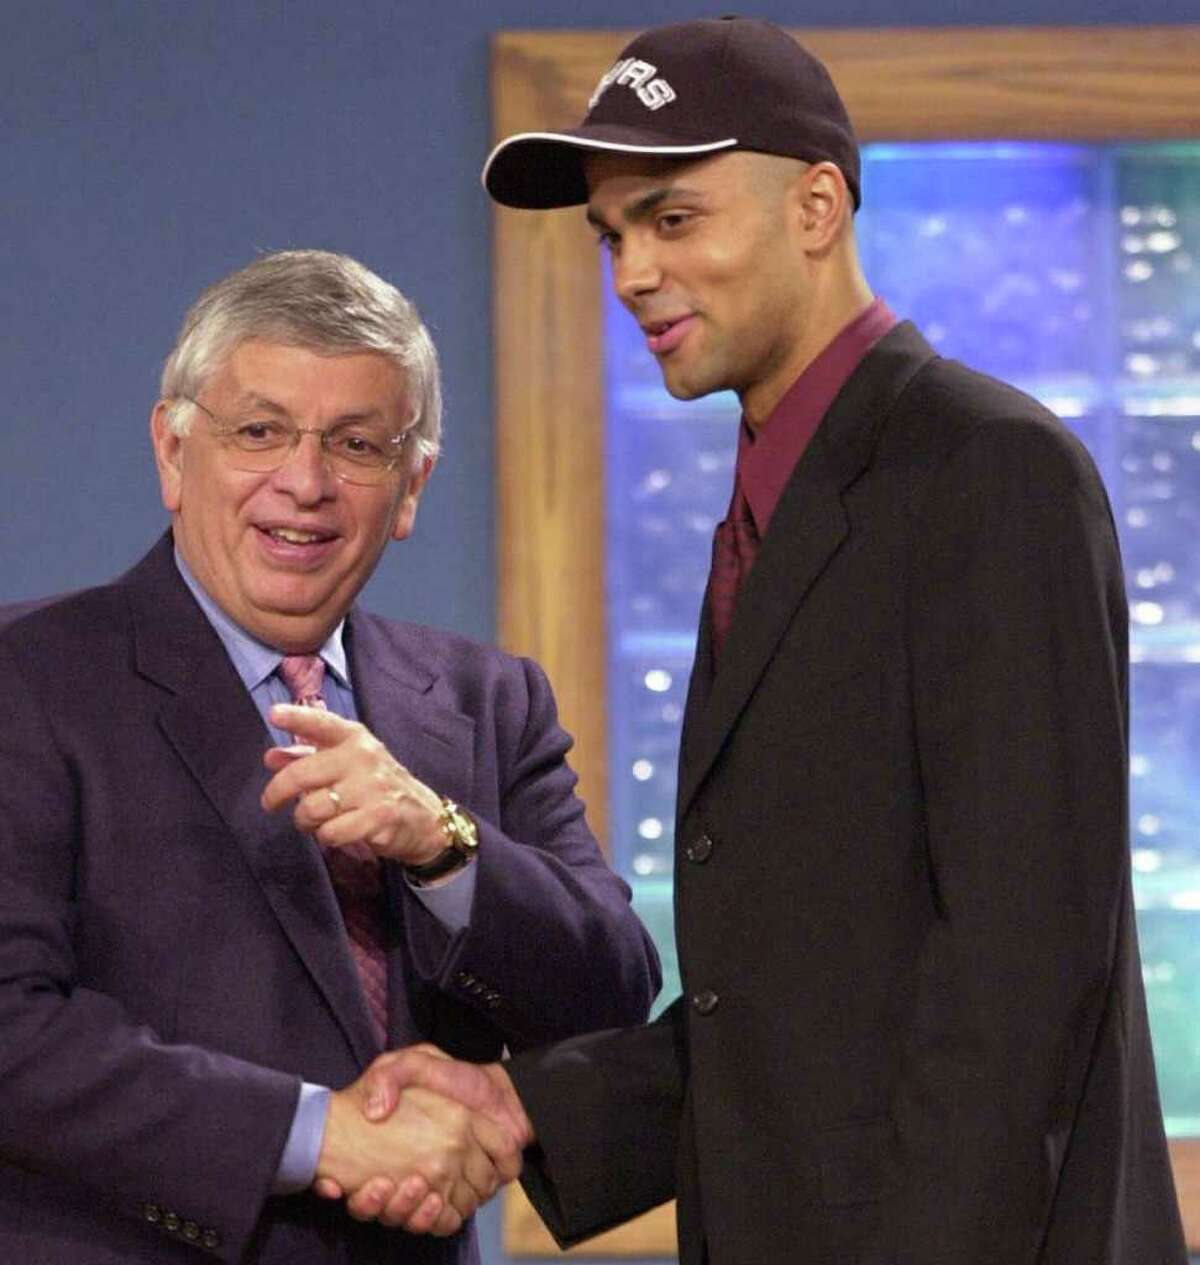 1. Tony Parker was selected by the San Antonio Spurs with the 28th overall pick in the 2001 NBA draft.